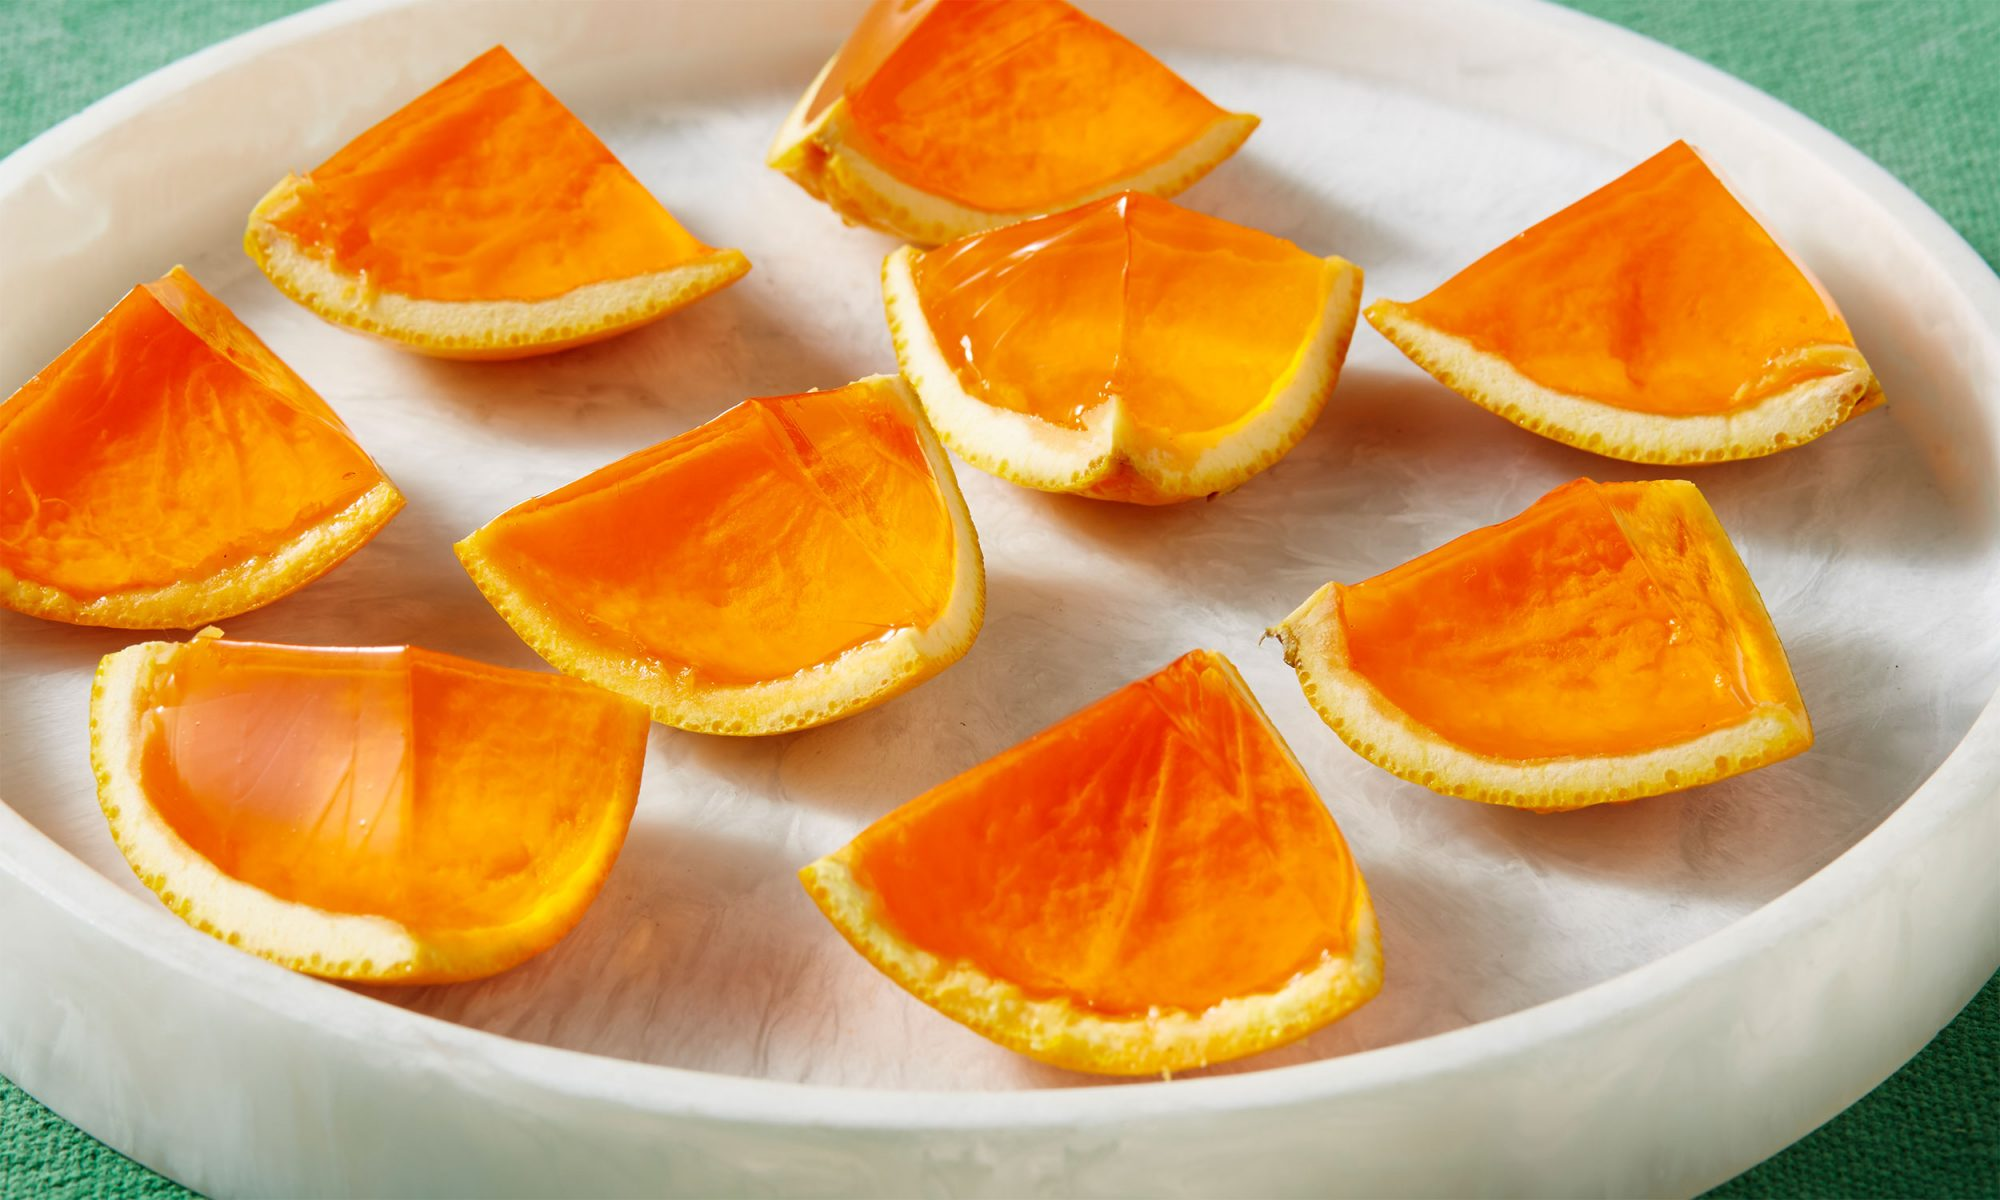 10 Jello Shots to Get Your Next Party Started